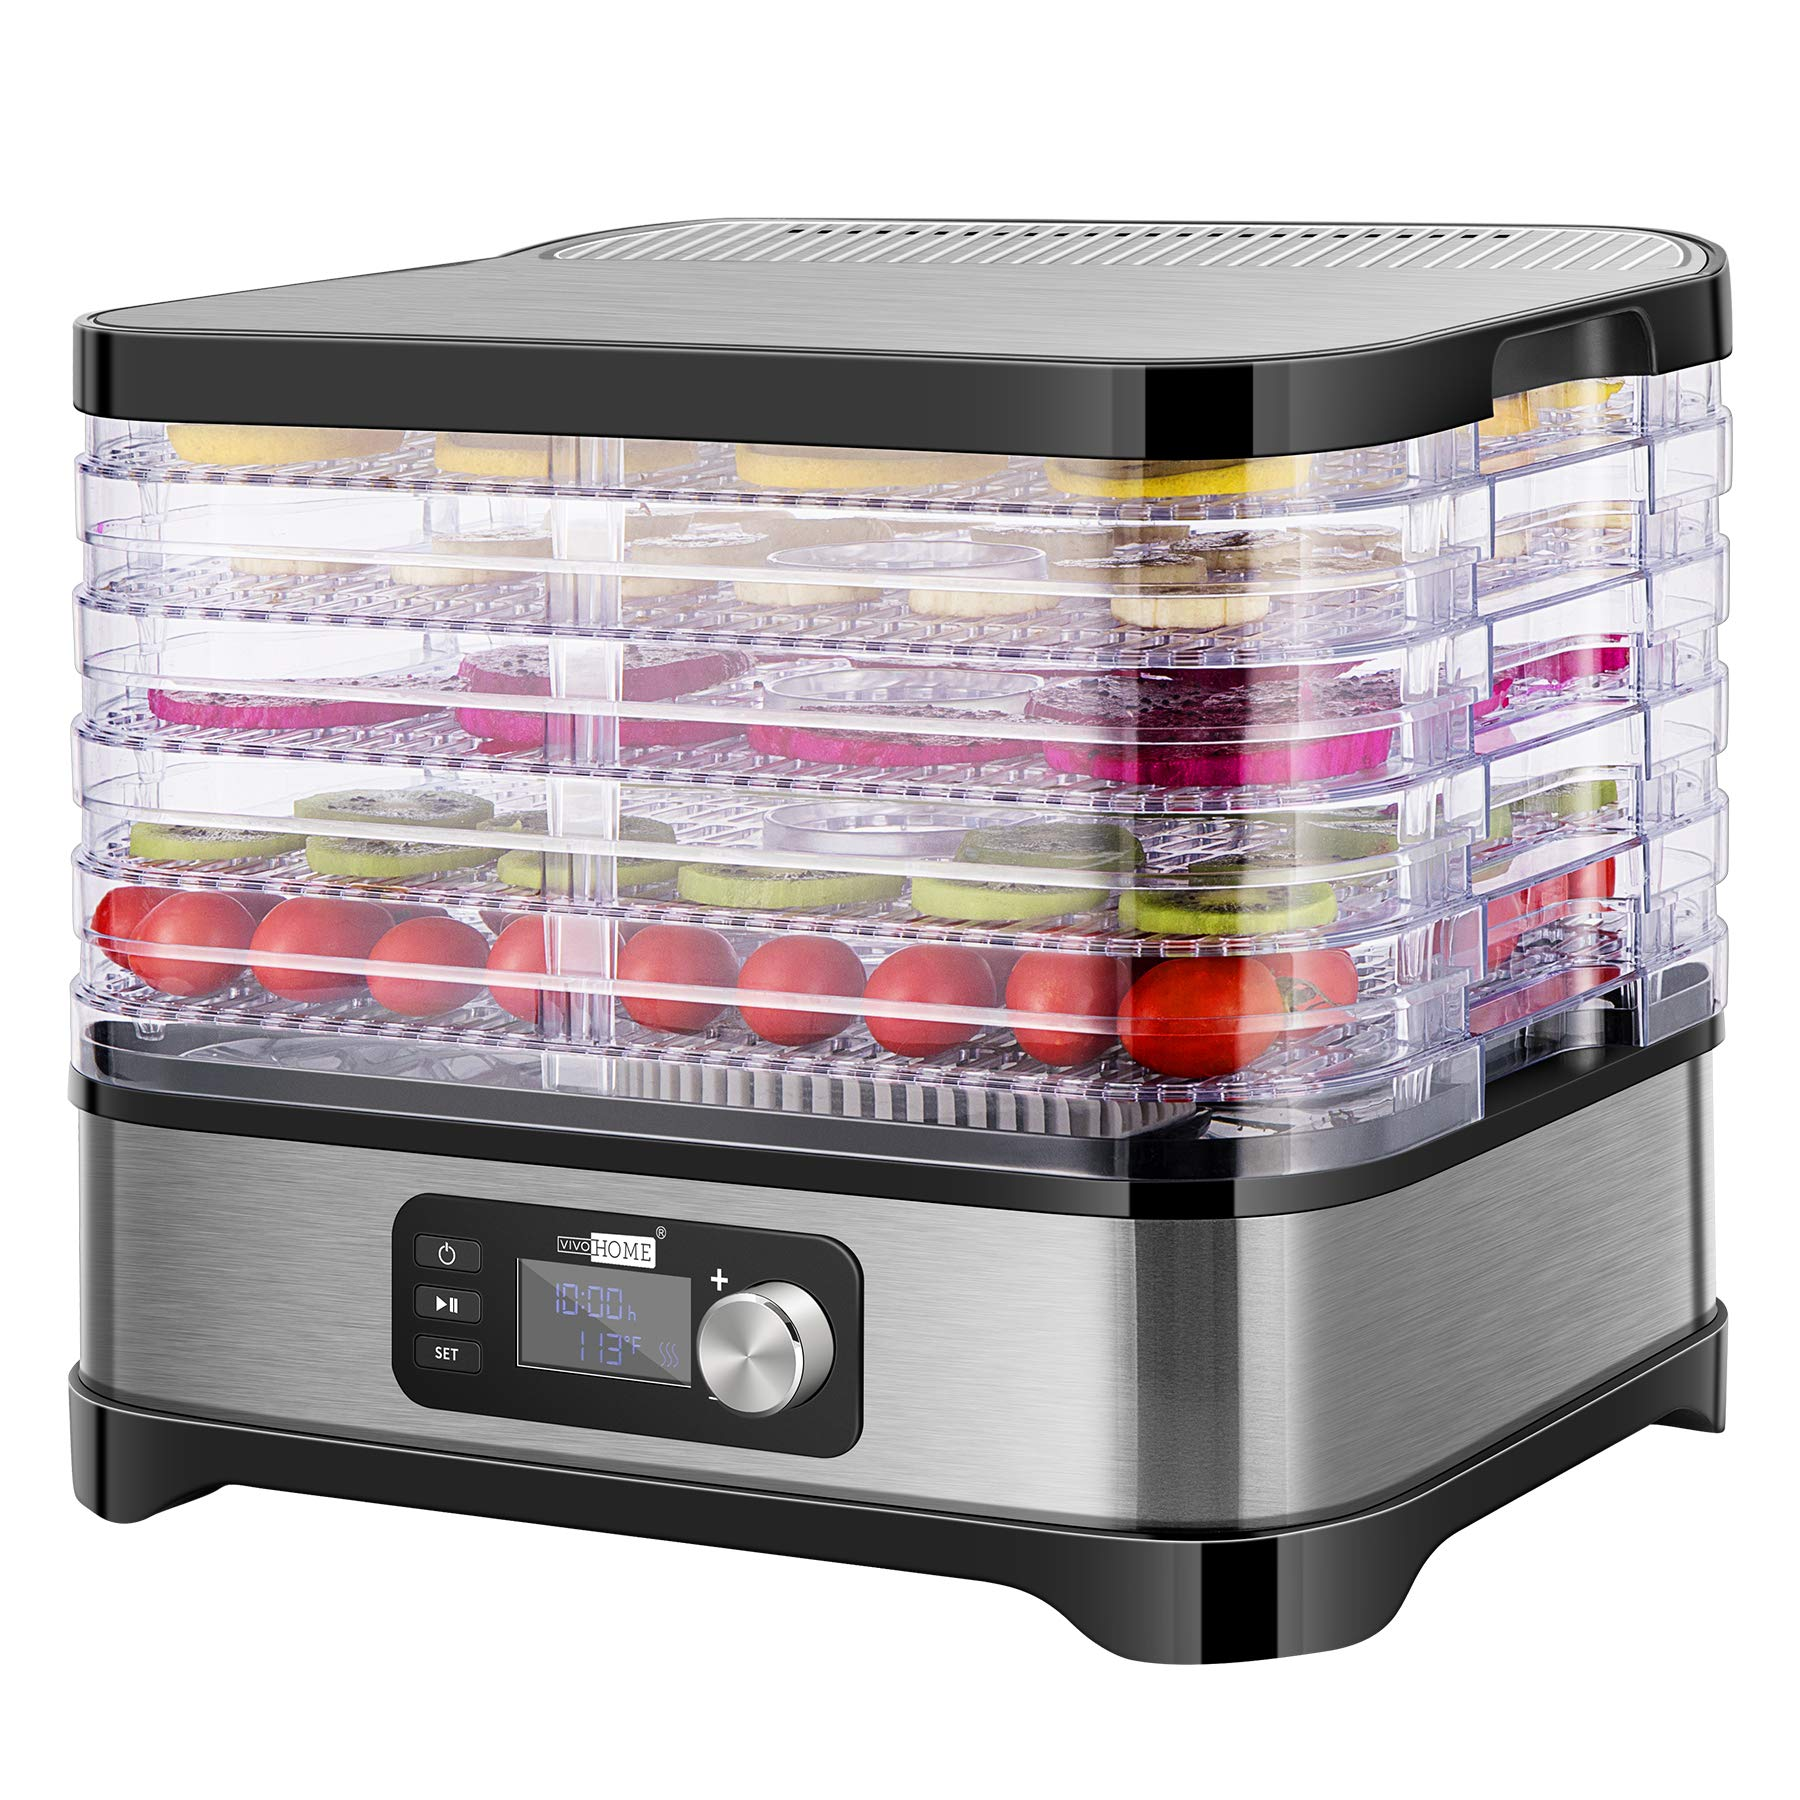 VIVOHOME Electric 400W 5 Trays Food Dehydrator Machine with Digital Timer and Temperature Control for Fruit Vegetable Meat Beef Jerky Maker BPA Free by VIVOHOME